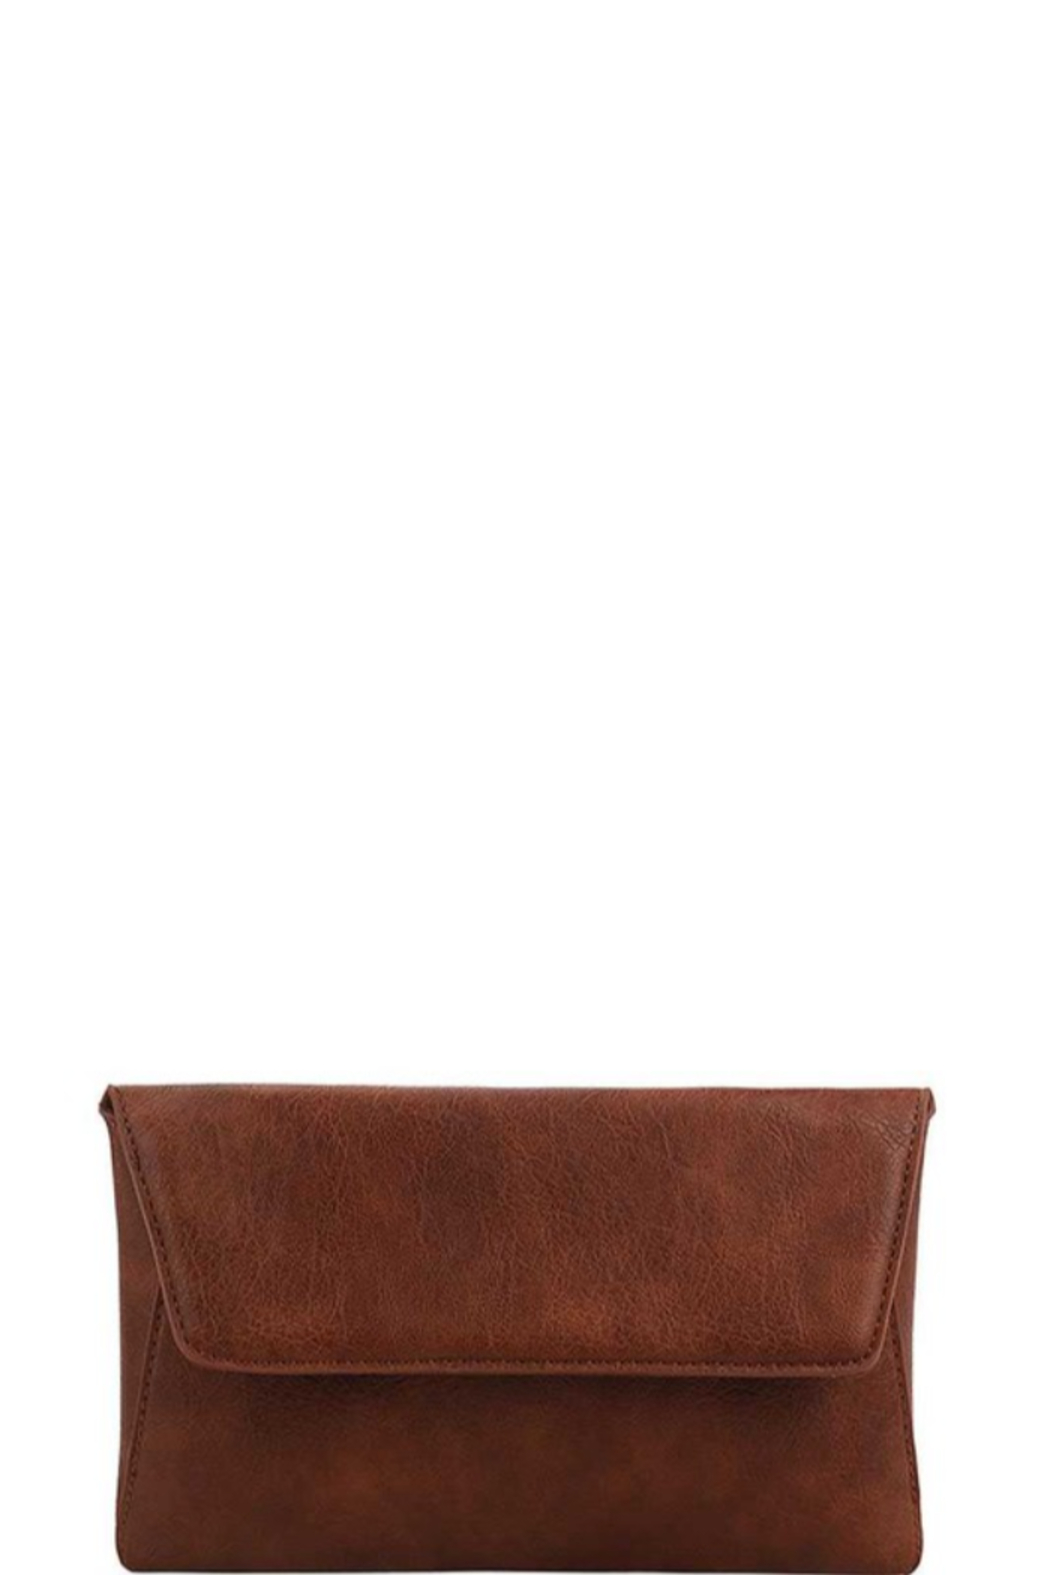 Suzie Bag Envelope Clutch - Front Cropped Image